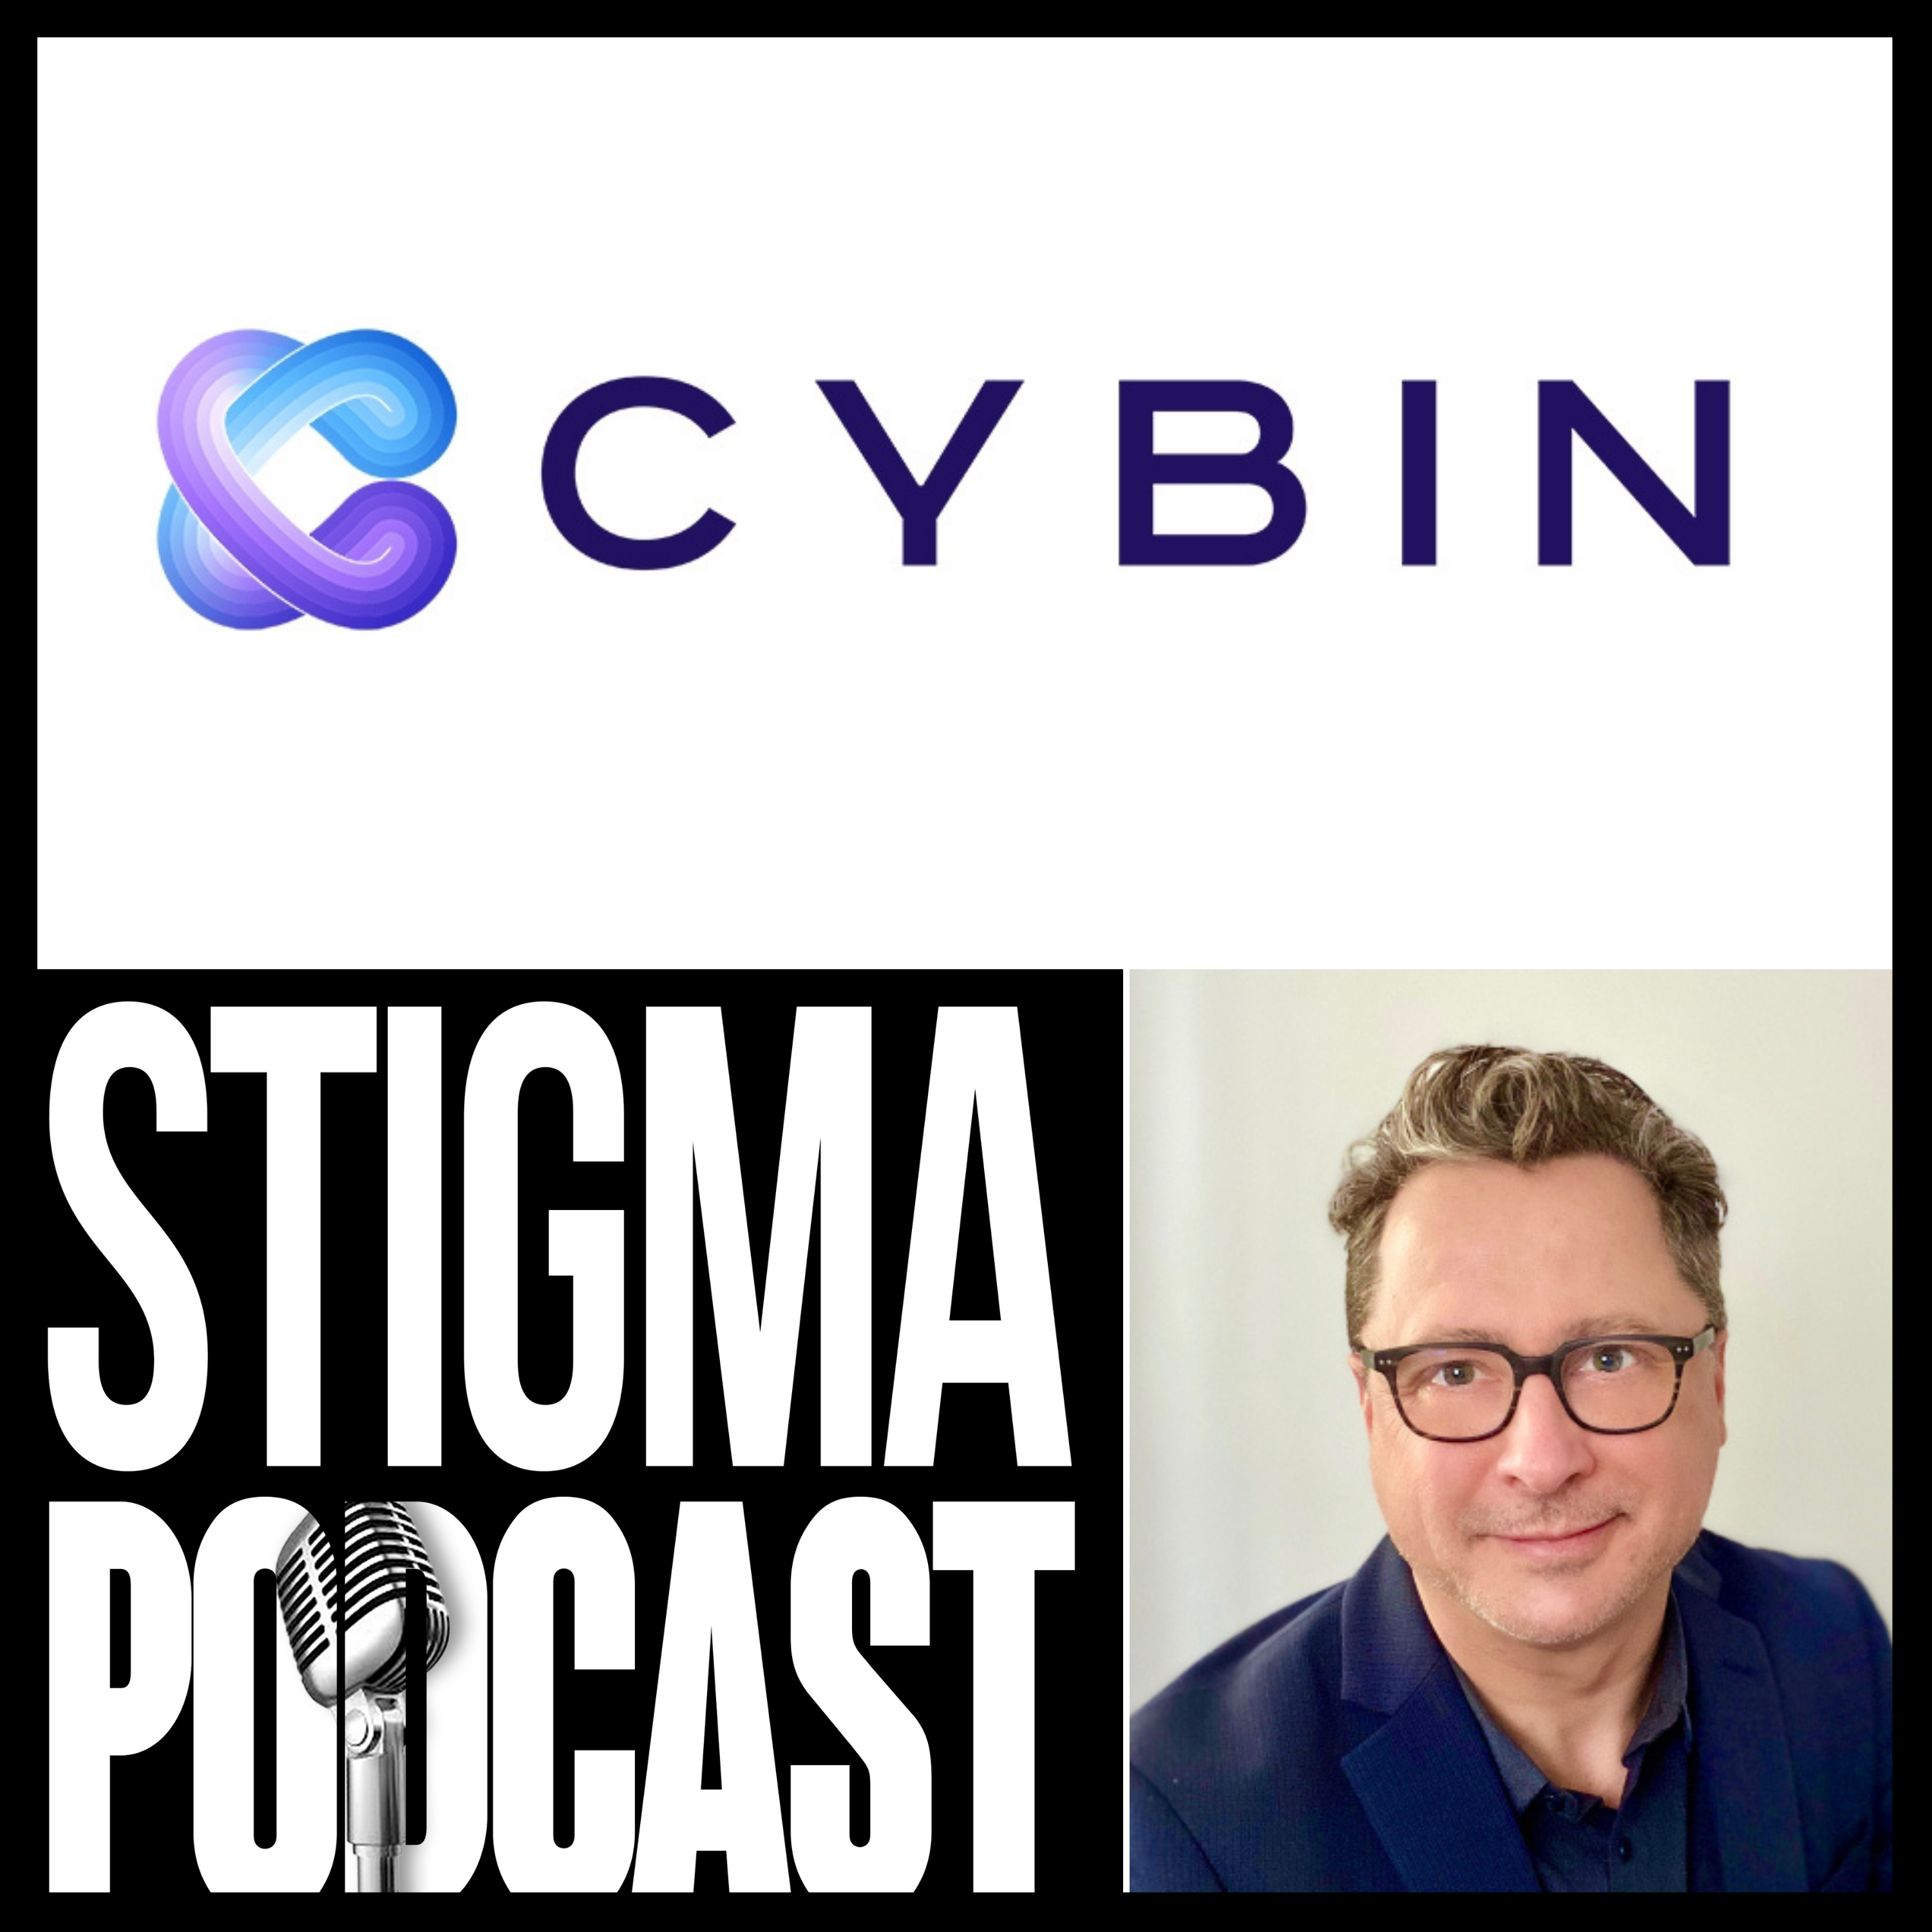 Stigma Podcast - Mental Health - #76 - Cybin CEO: Doug Drysdale on The Future of Psychedelic Treatments